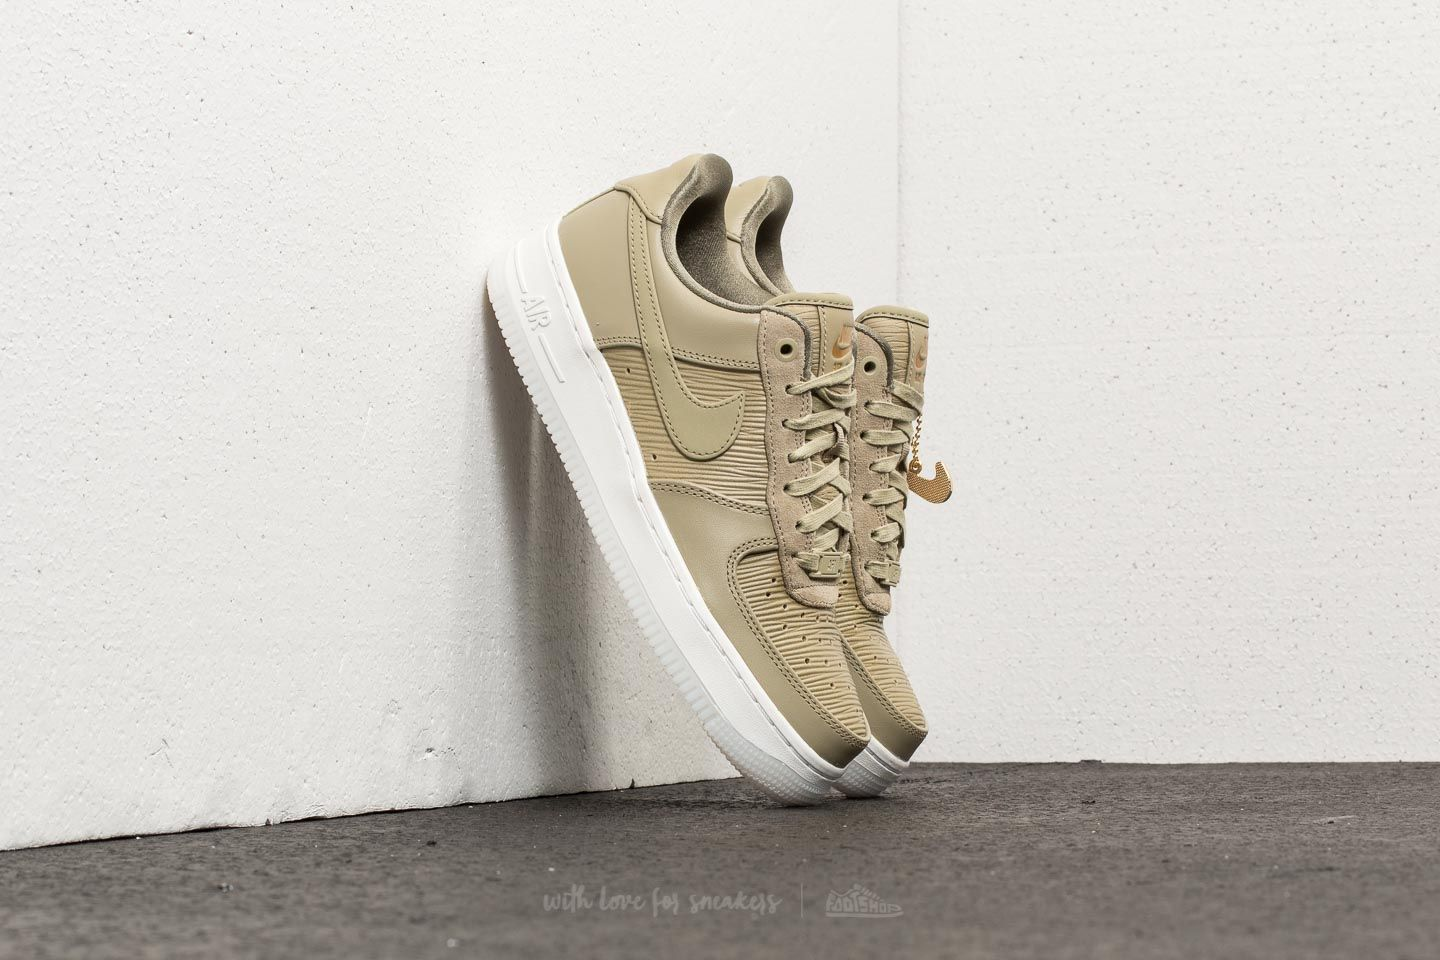 Nike Wmns Air Force 1 '07 LX Neutral Olive/ Neutral Olive